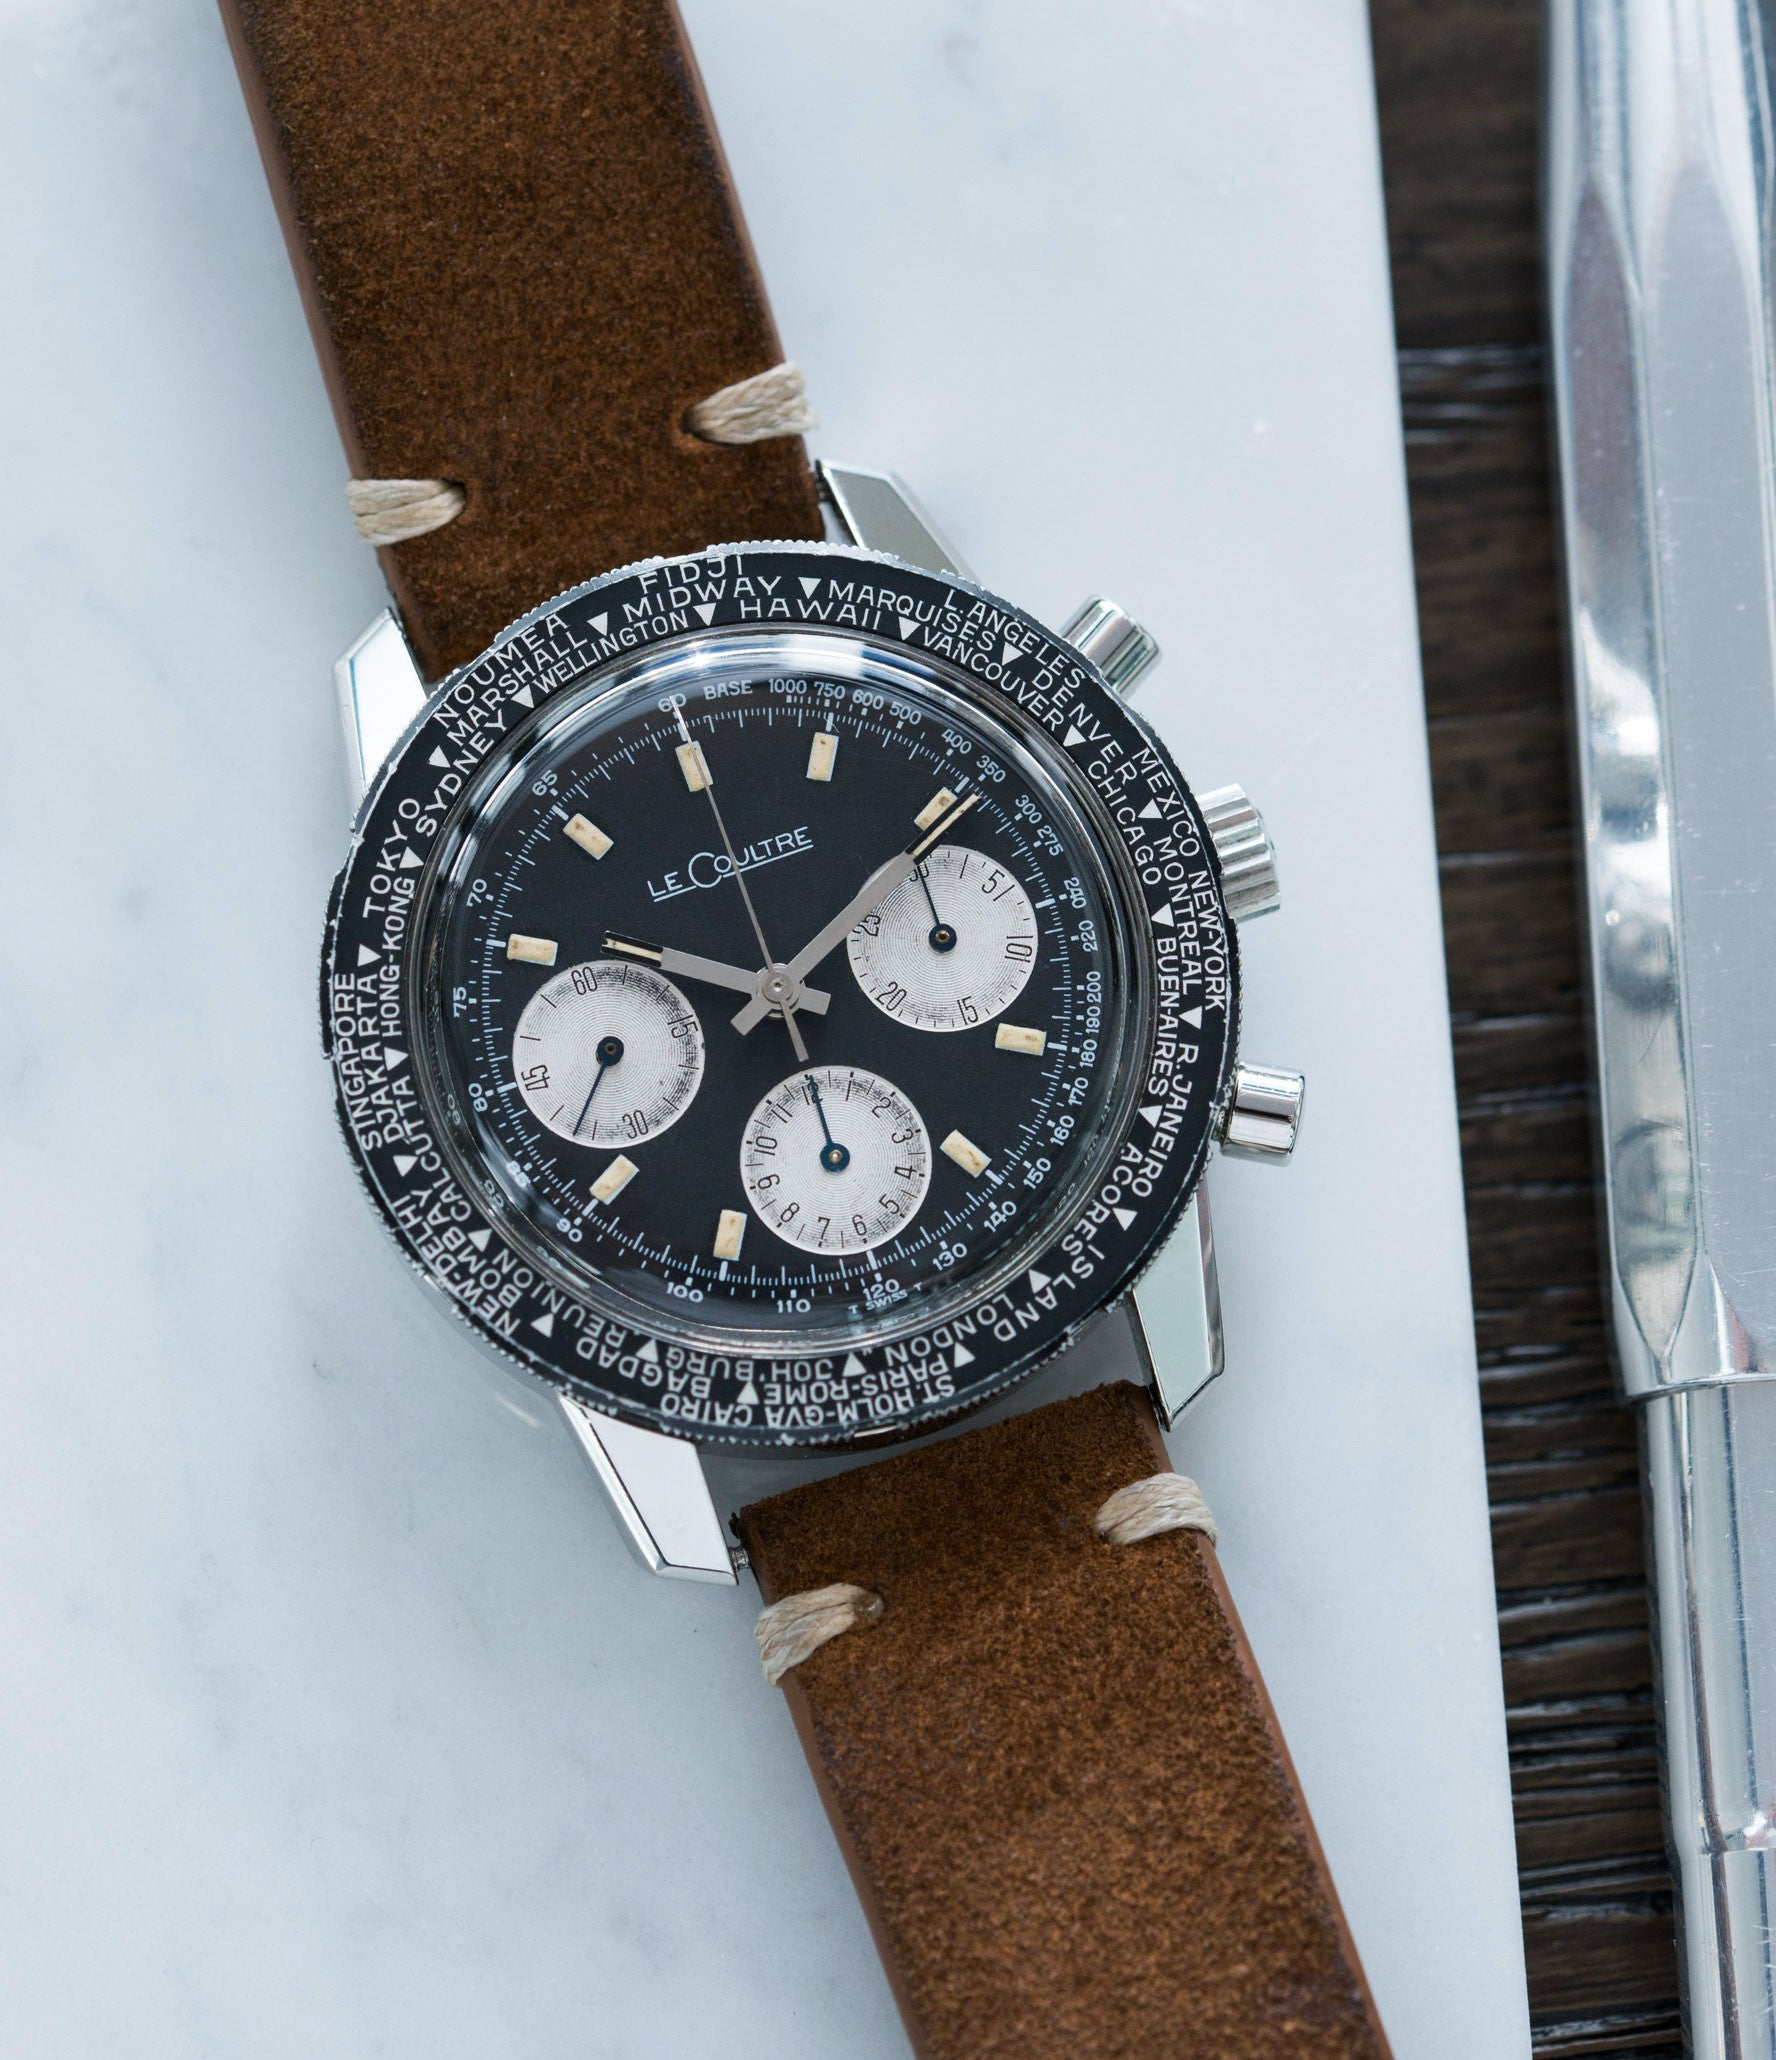 collect vintage watches LeCoultre Deep Sea Shark E2643 steel chronograph online at A Collected Man London vintage watch specialist